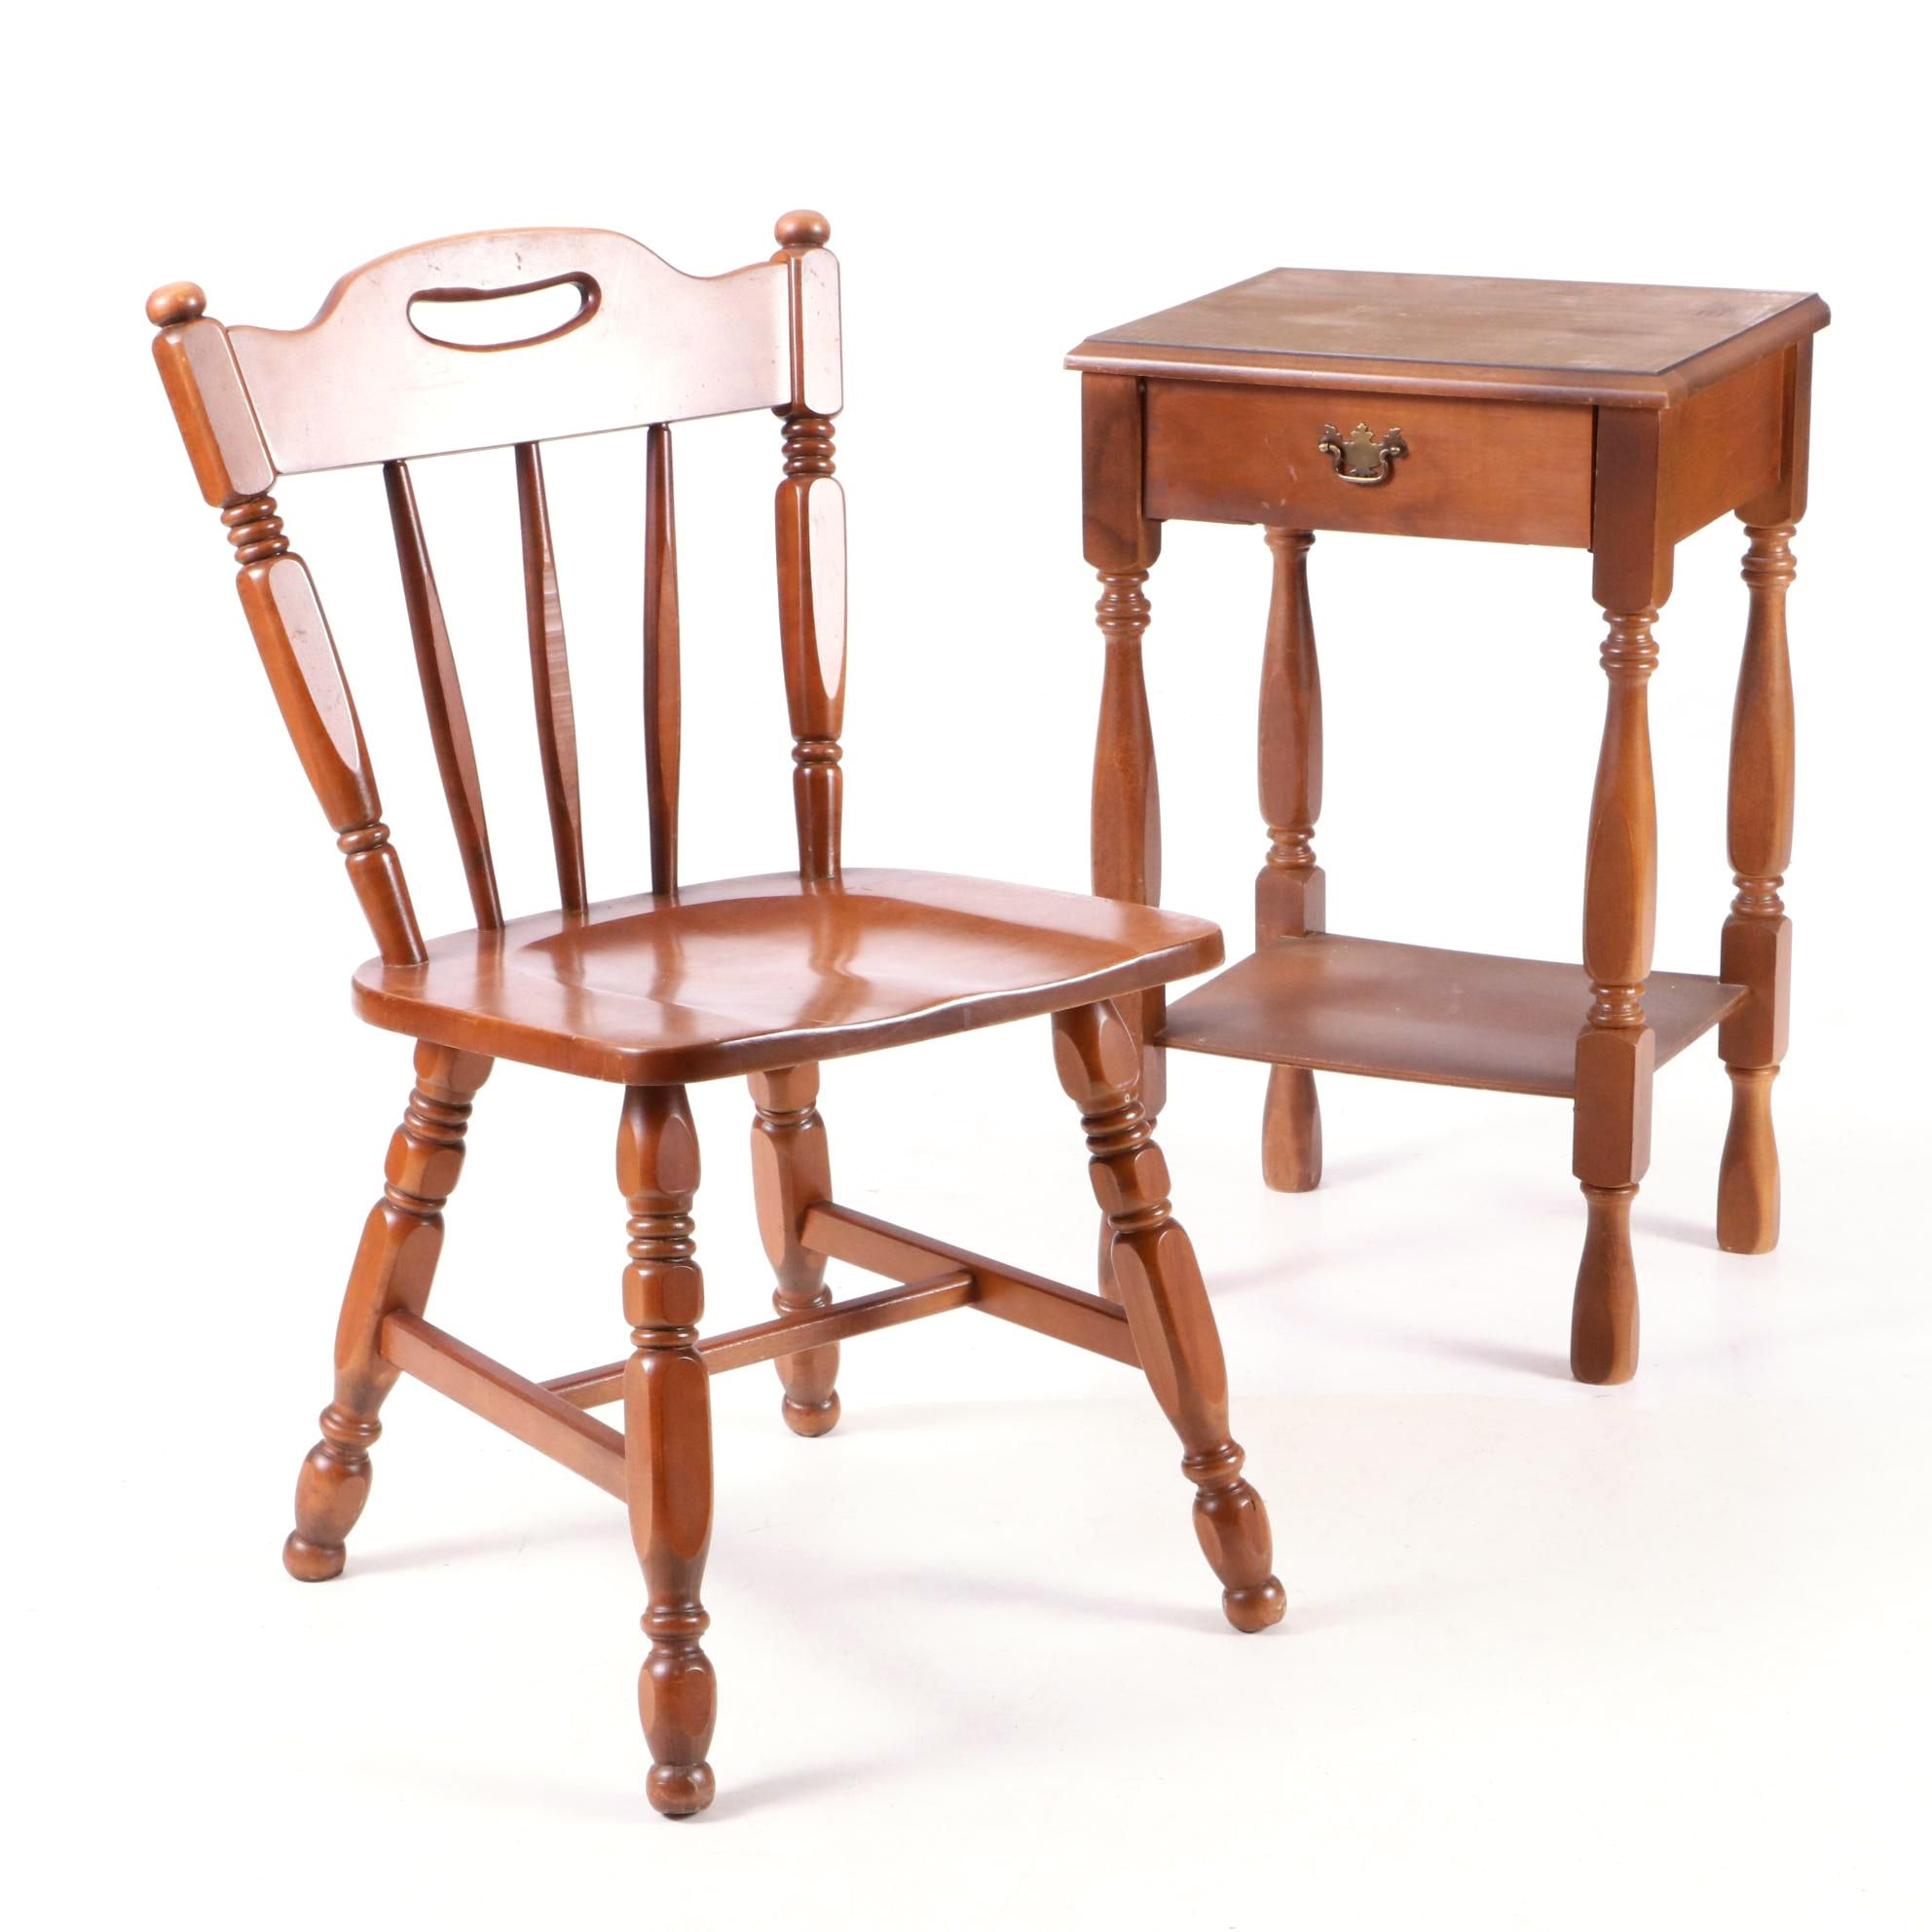 Maple Windsor Chair and Side Table, 20th Century